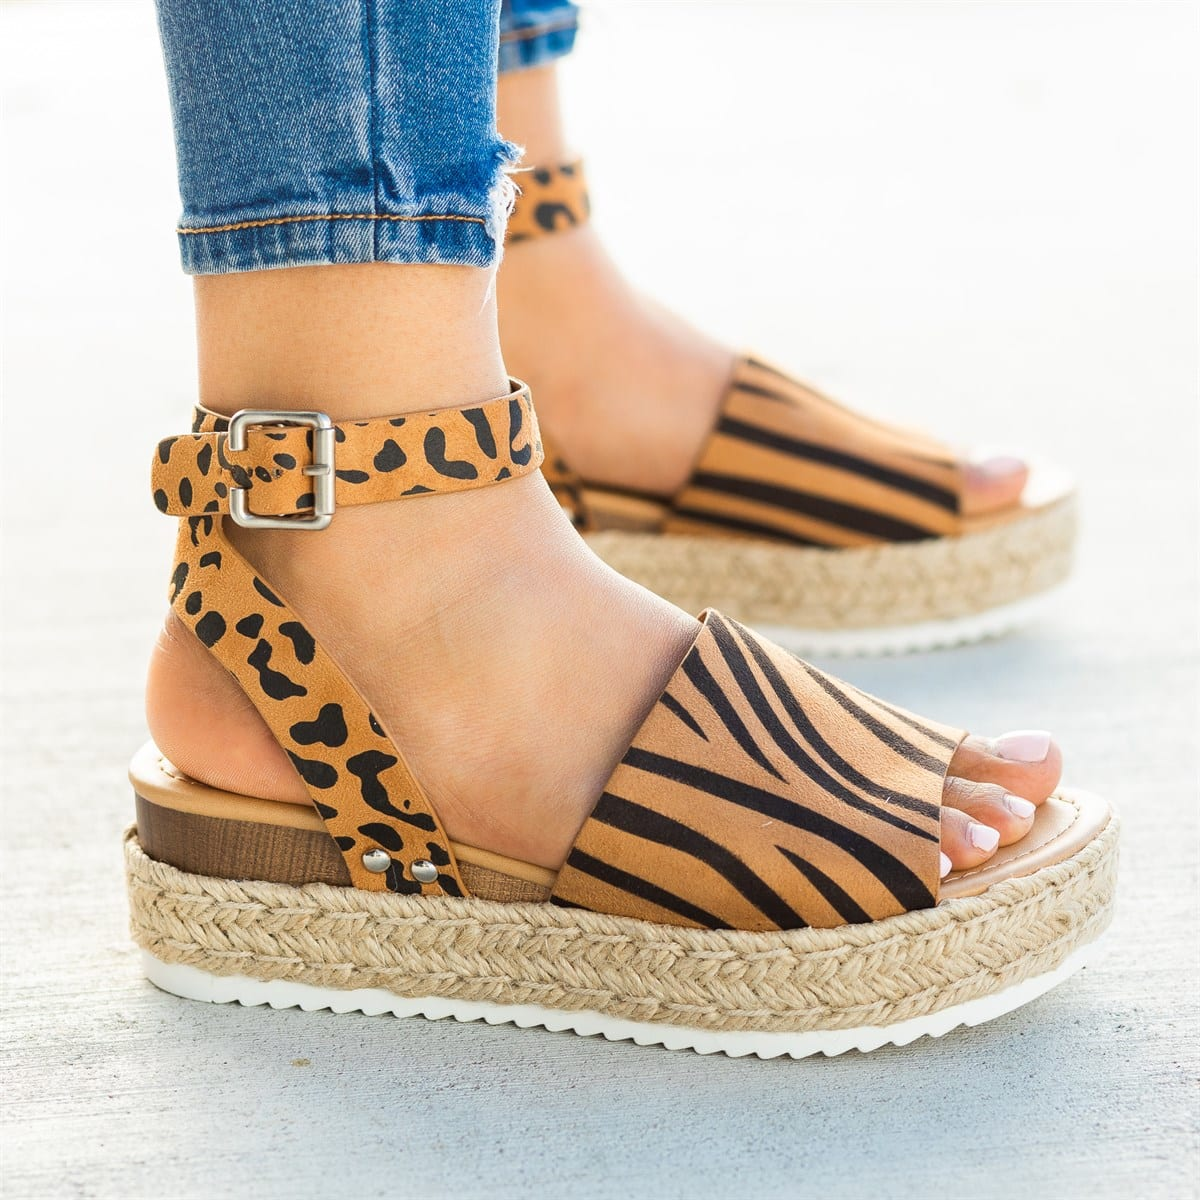 LAAMEI Wedges Shoes Platform Sandals Slides High-Heels Leopard Plus-Size Femme Women